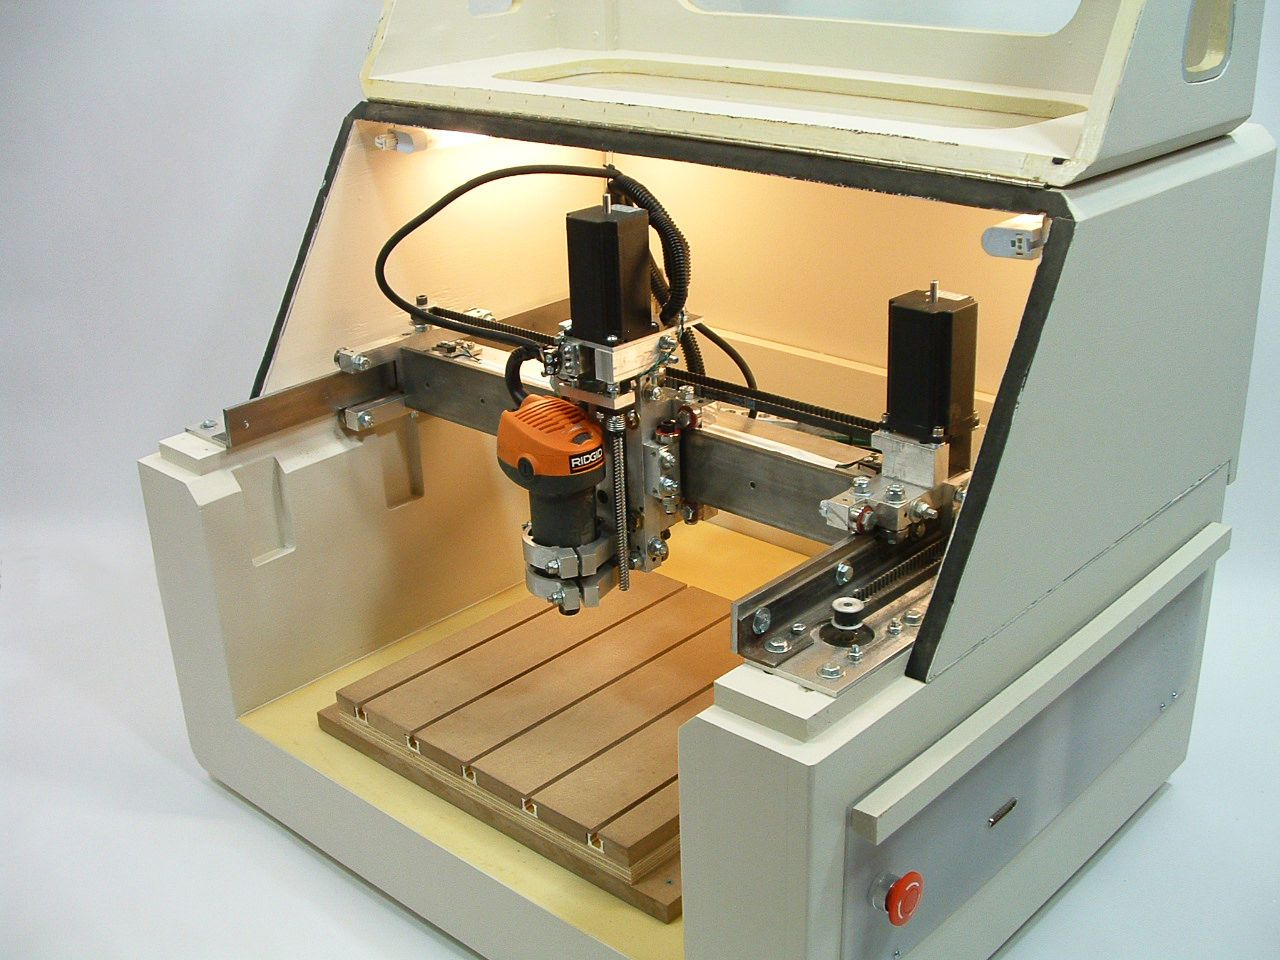 Plans to build cnc 3 axis router table milling machine engraver plans to build cnc 3 axis router table milling machine engraver pdf download ebay greentooth